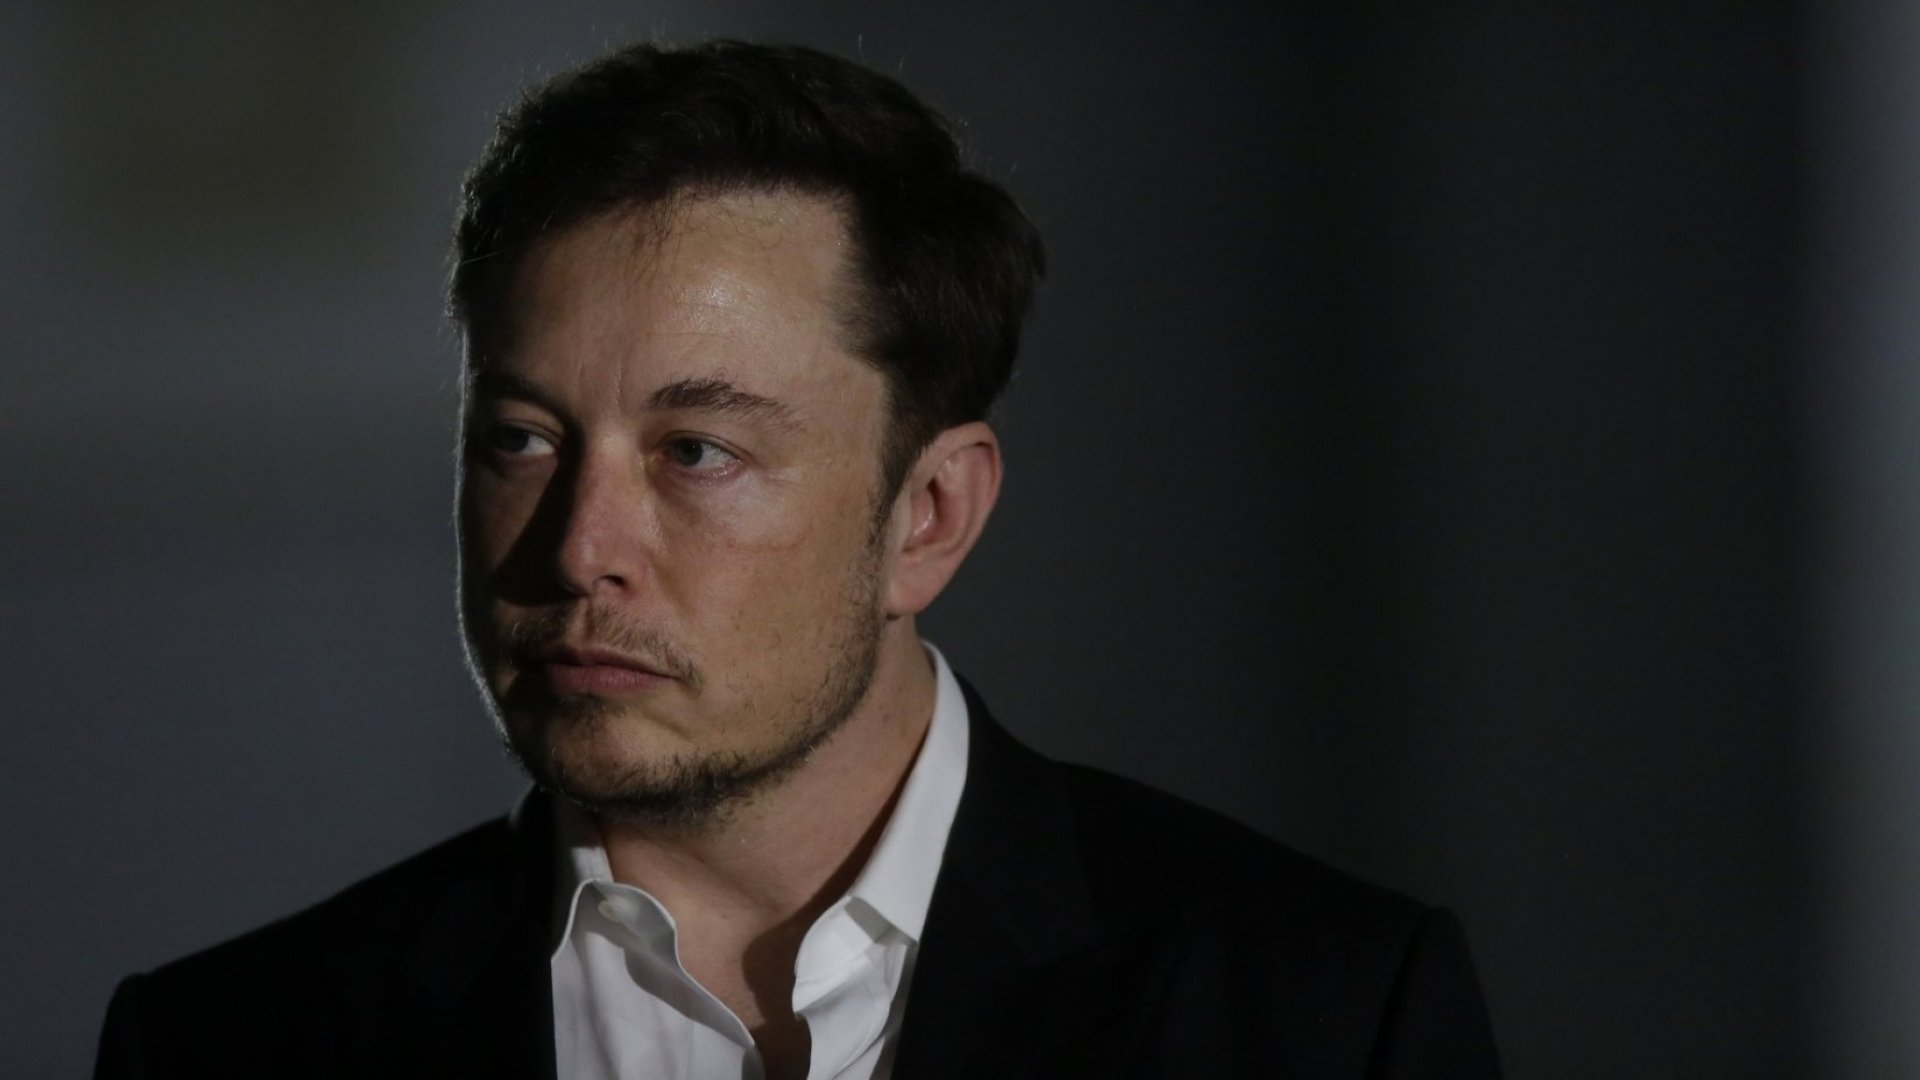 Elon Musk Sent an Email at 1:20 in the Morning. Here's Why You Shouldn't